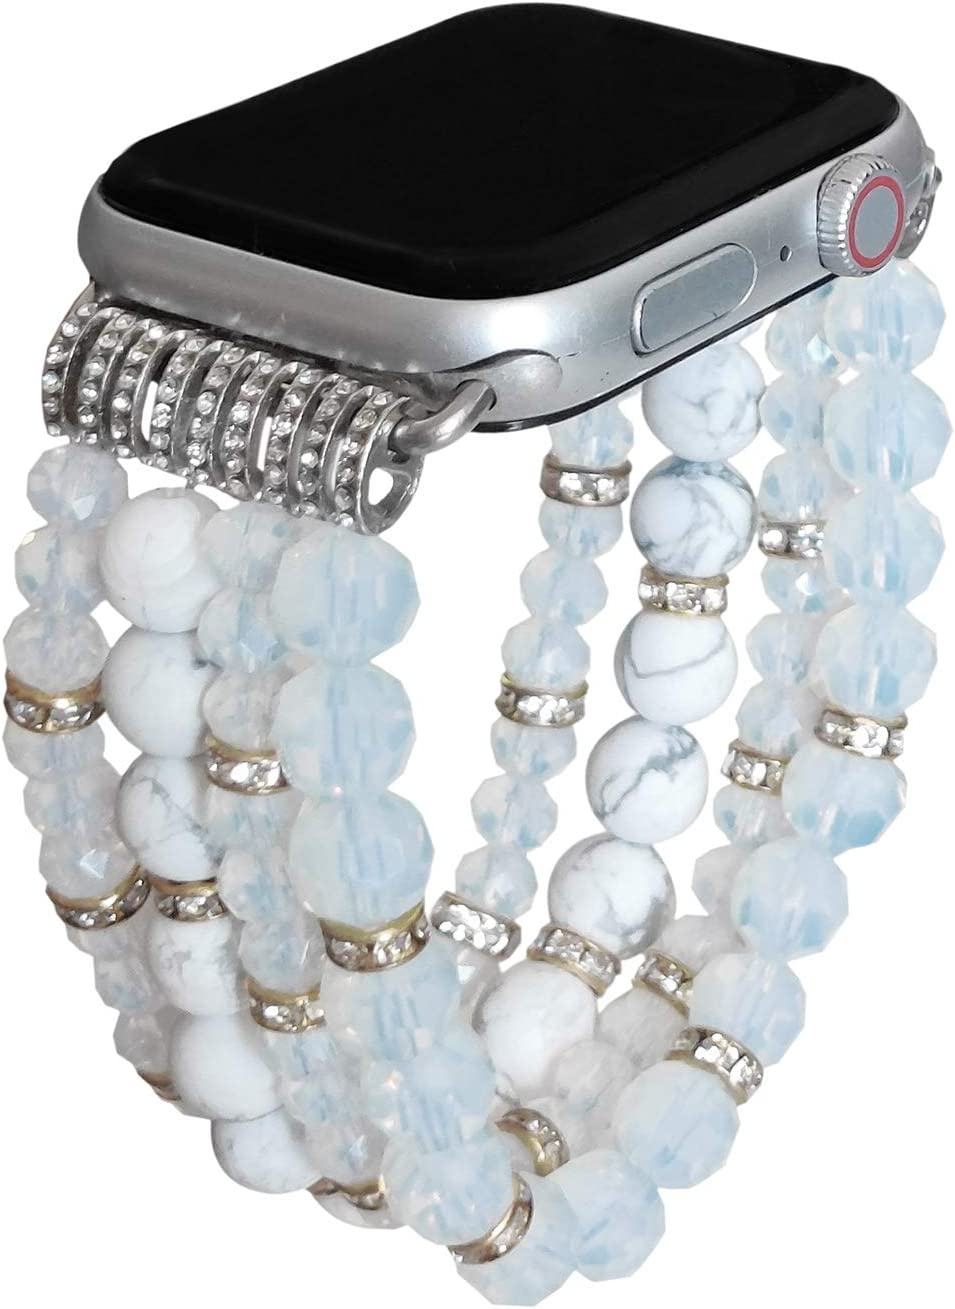 ZOOZOOT Natural Gemstone Crystal Bracelet Compatible with Apple Watch Bands Women Girl, Cute Handmade Fashion Elastic Beaded Strap Compatible for Apple iWatch Series SE/6/5/4/3/2/1